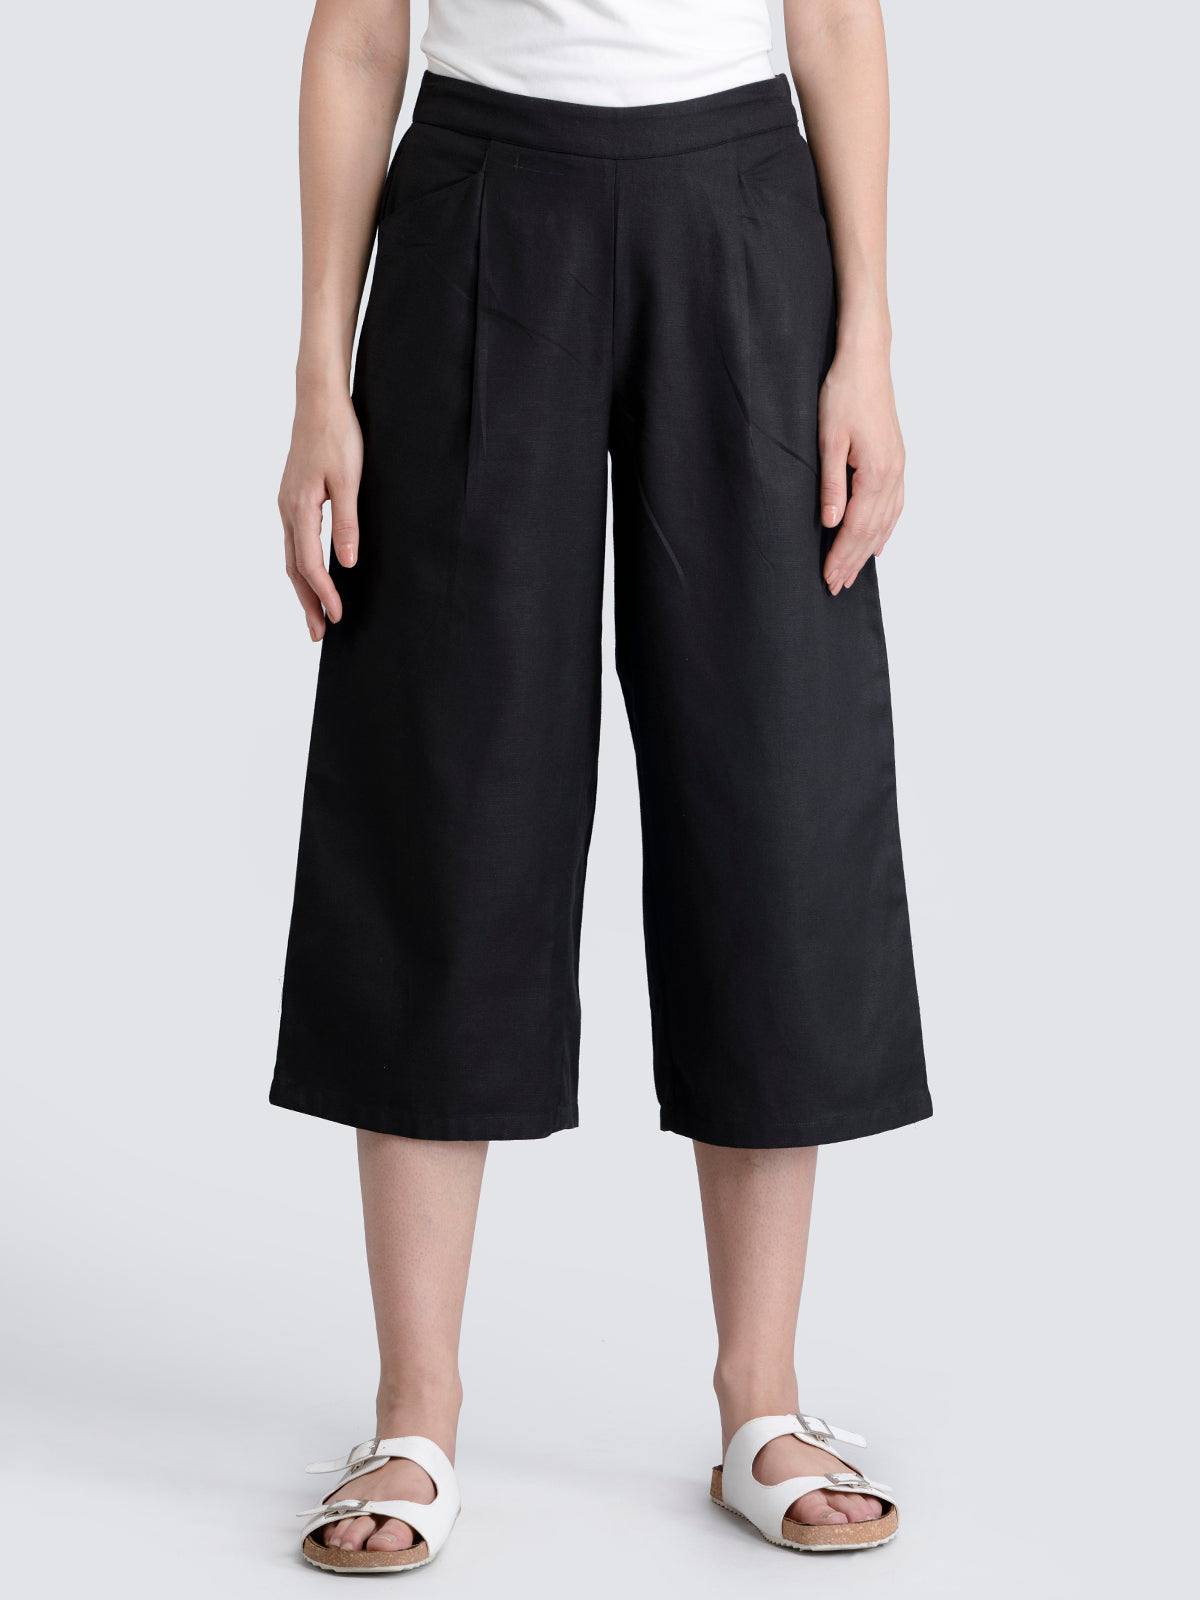 Cotton Flax Pleated Culottes With Elastic - Black